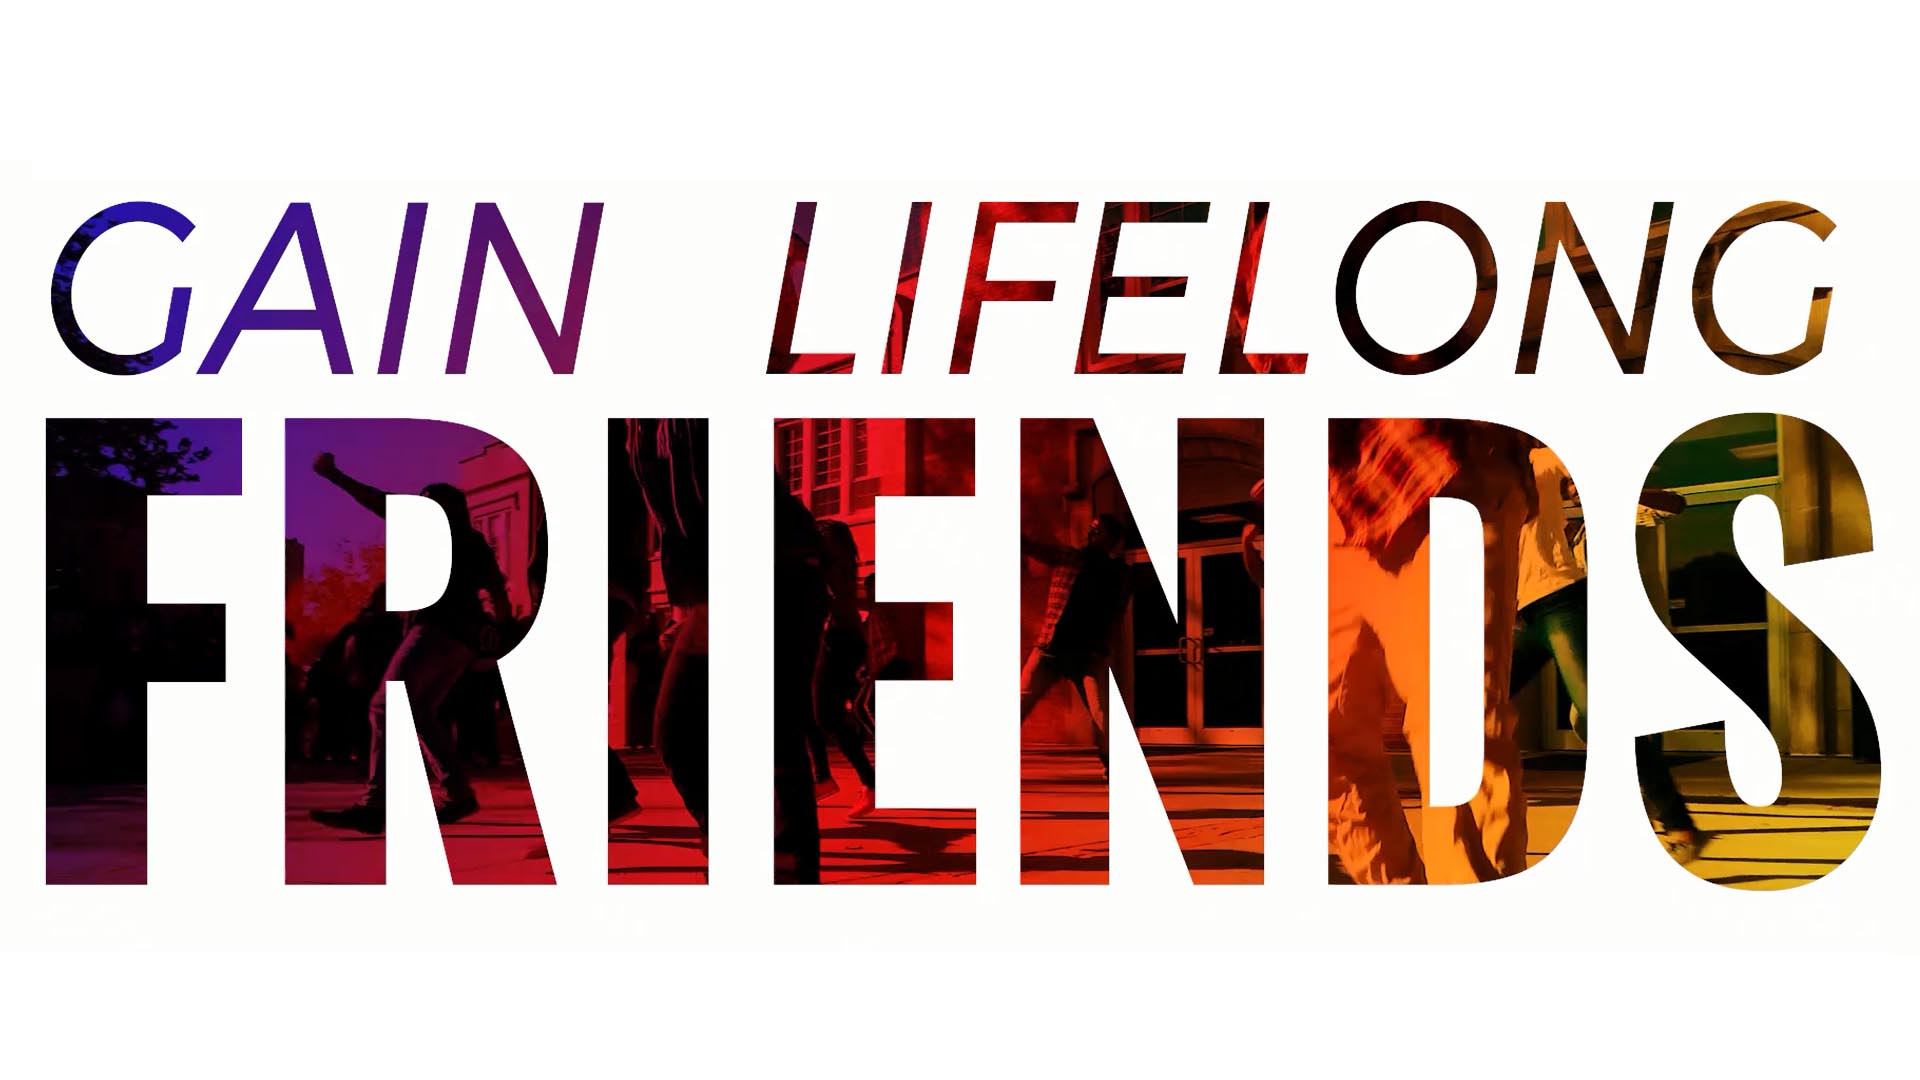 Gain Lifelong Friends